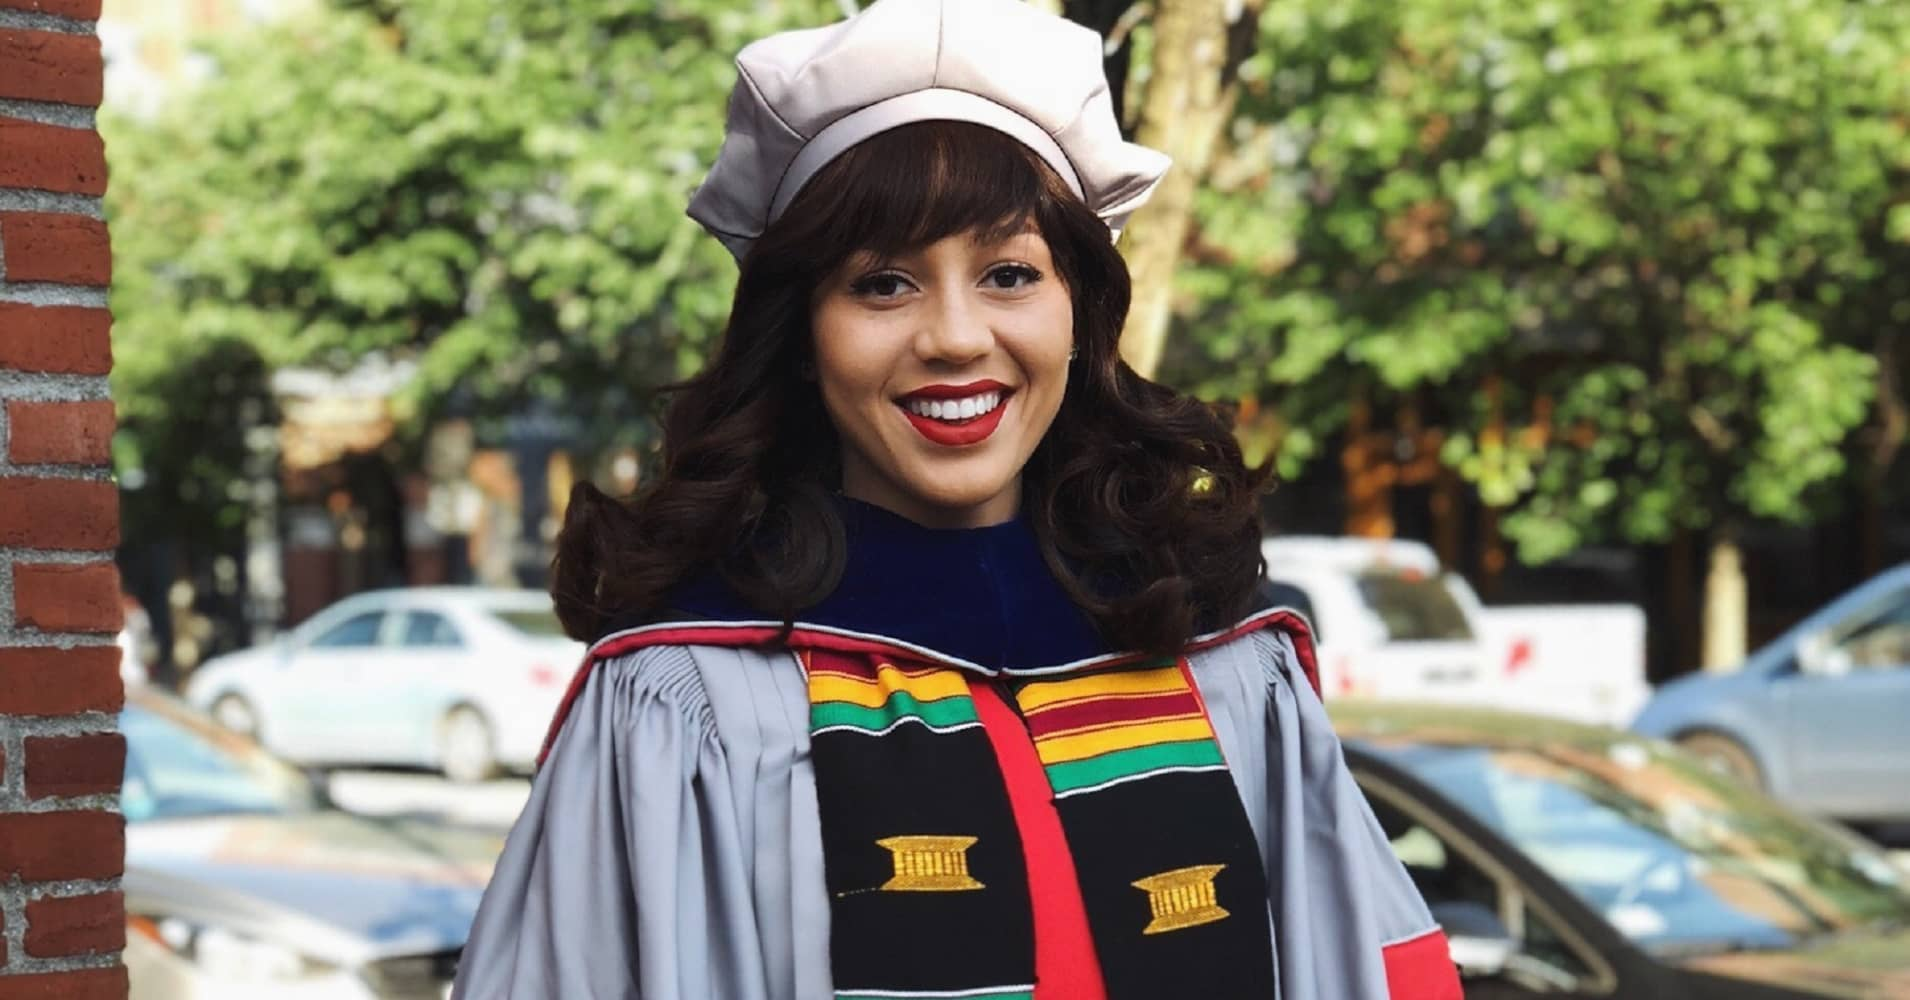 cnbc.com - Courtney Connley - Meet Mareena Robinson Snowden, the first black woman to earn a PhD in nuclear engineering from MIT